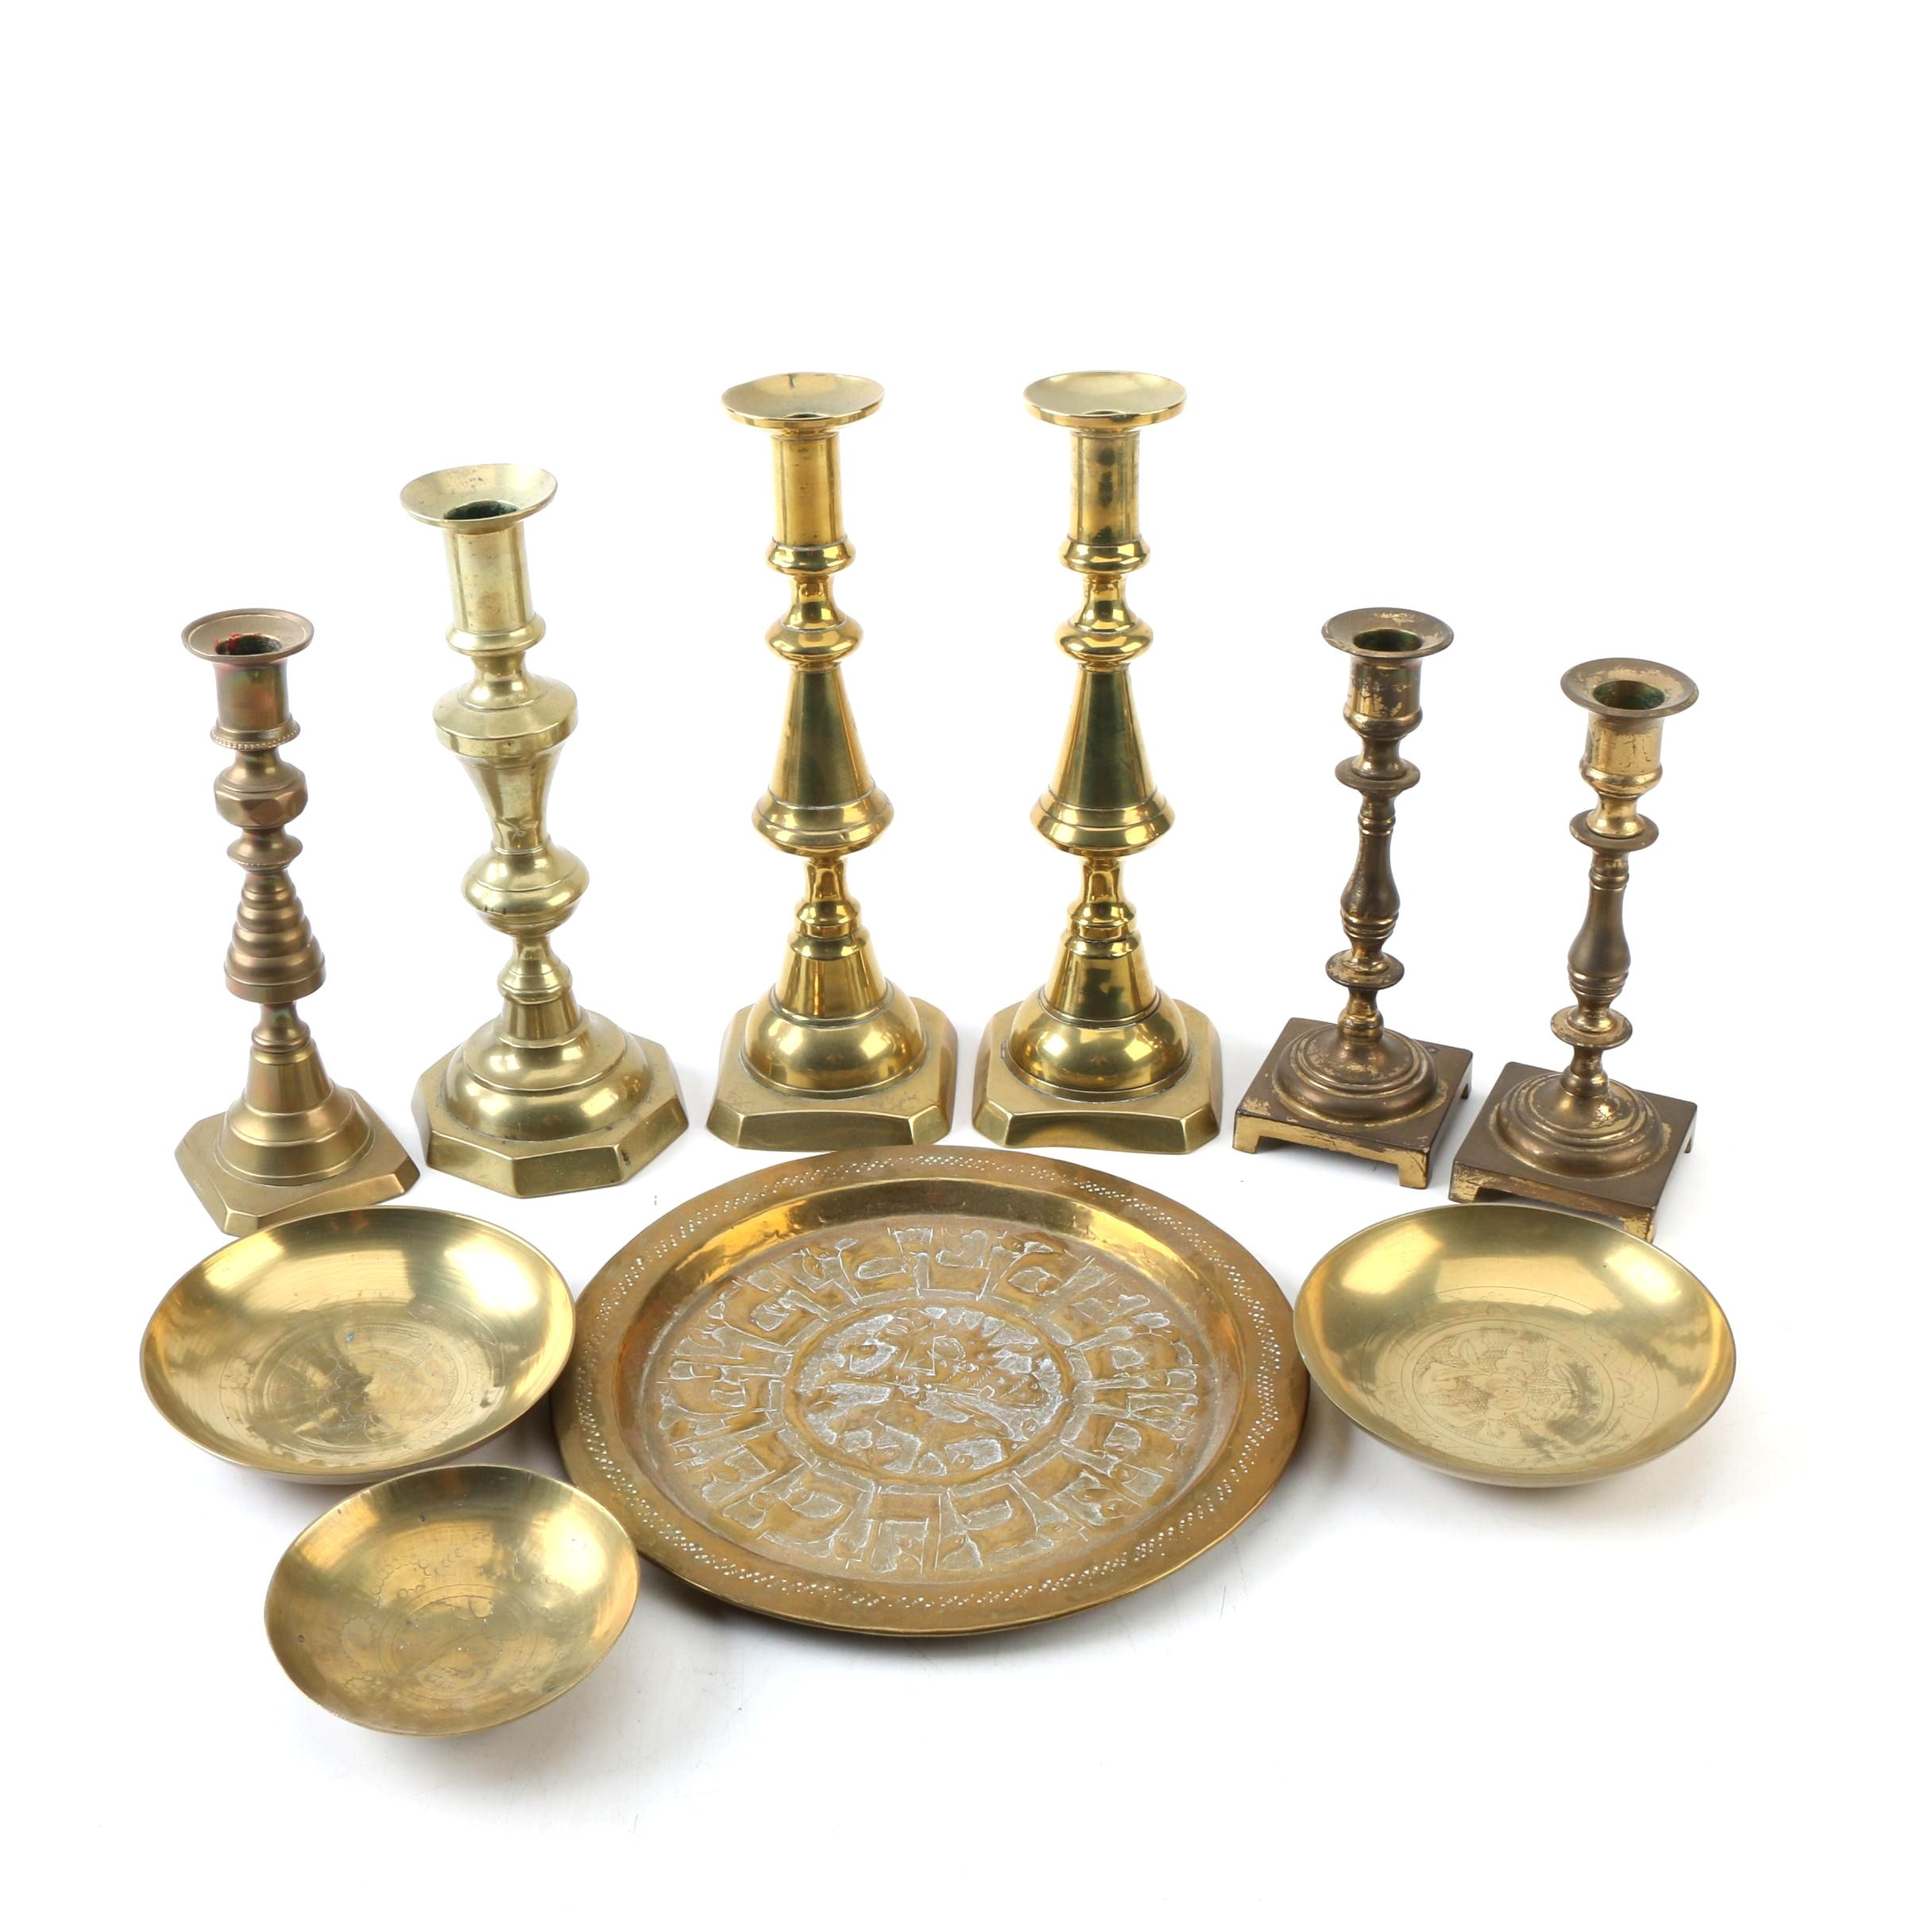 Brass Candle Holders and Plates including English Push-Up Candlesticks